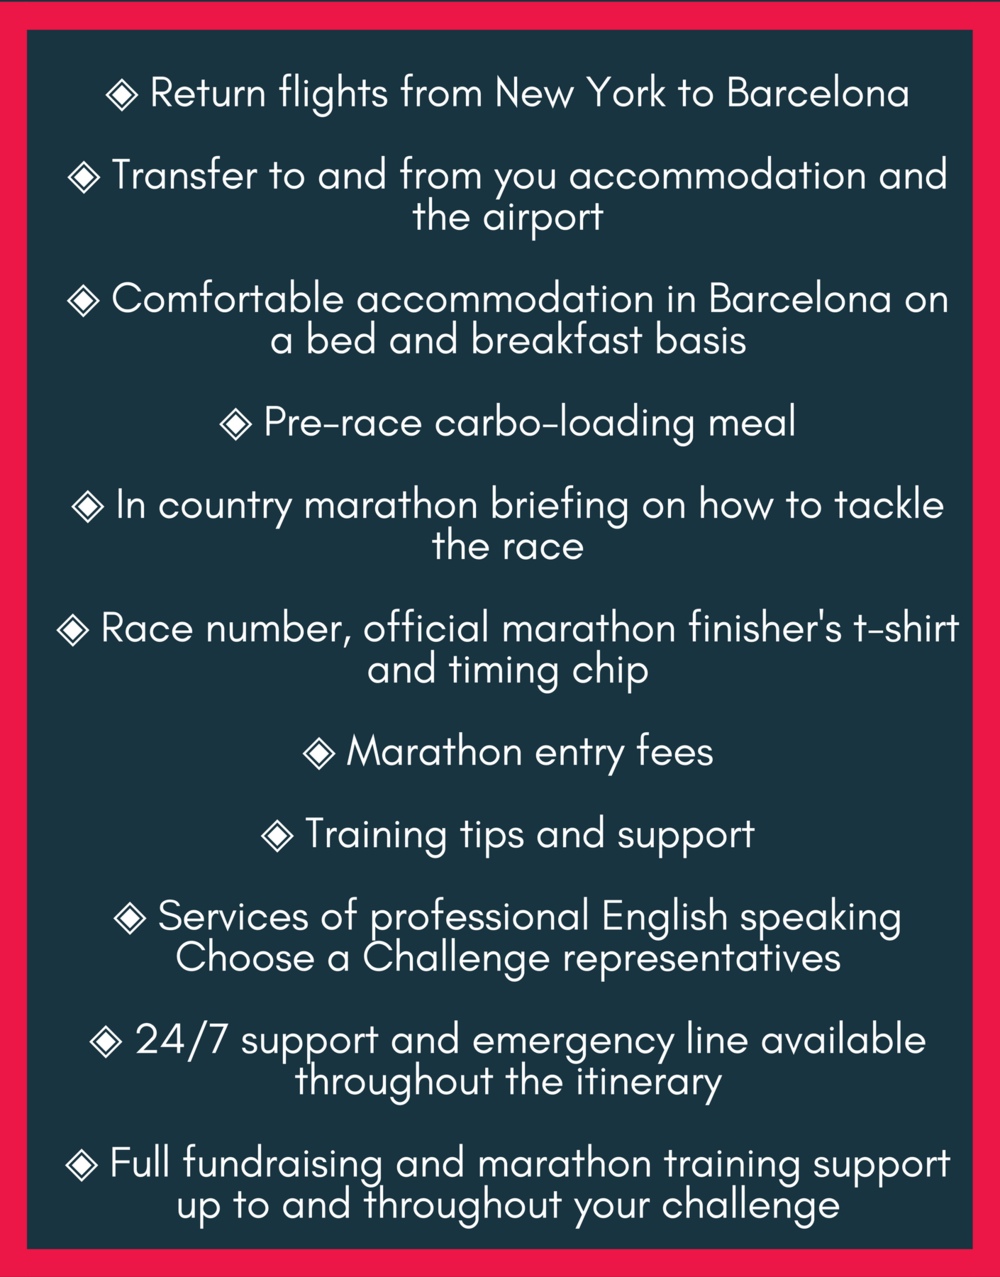 Return flights from London to BarcelonaTransfer to and from you accommodation and the airportComfortable accommodation in Barcelona on a bed and breakfast basisPre-race carbo-loading mealIn country marathon briefing  (4).png